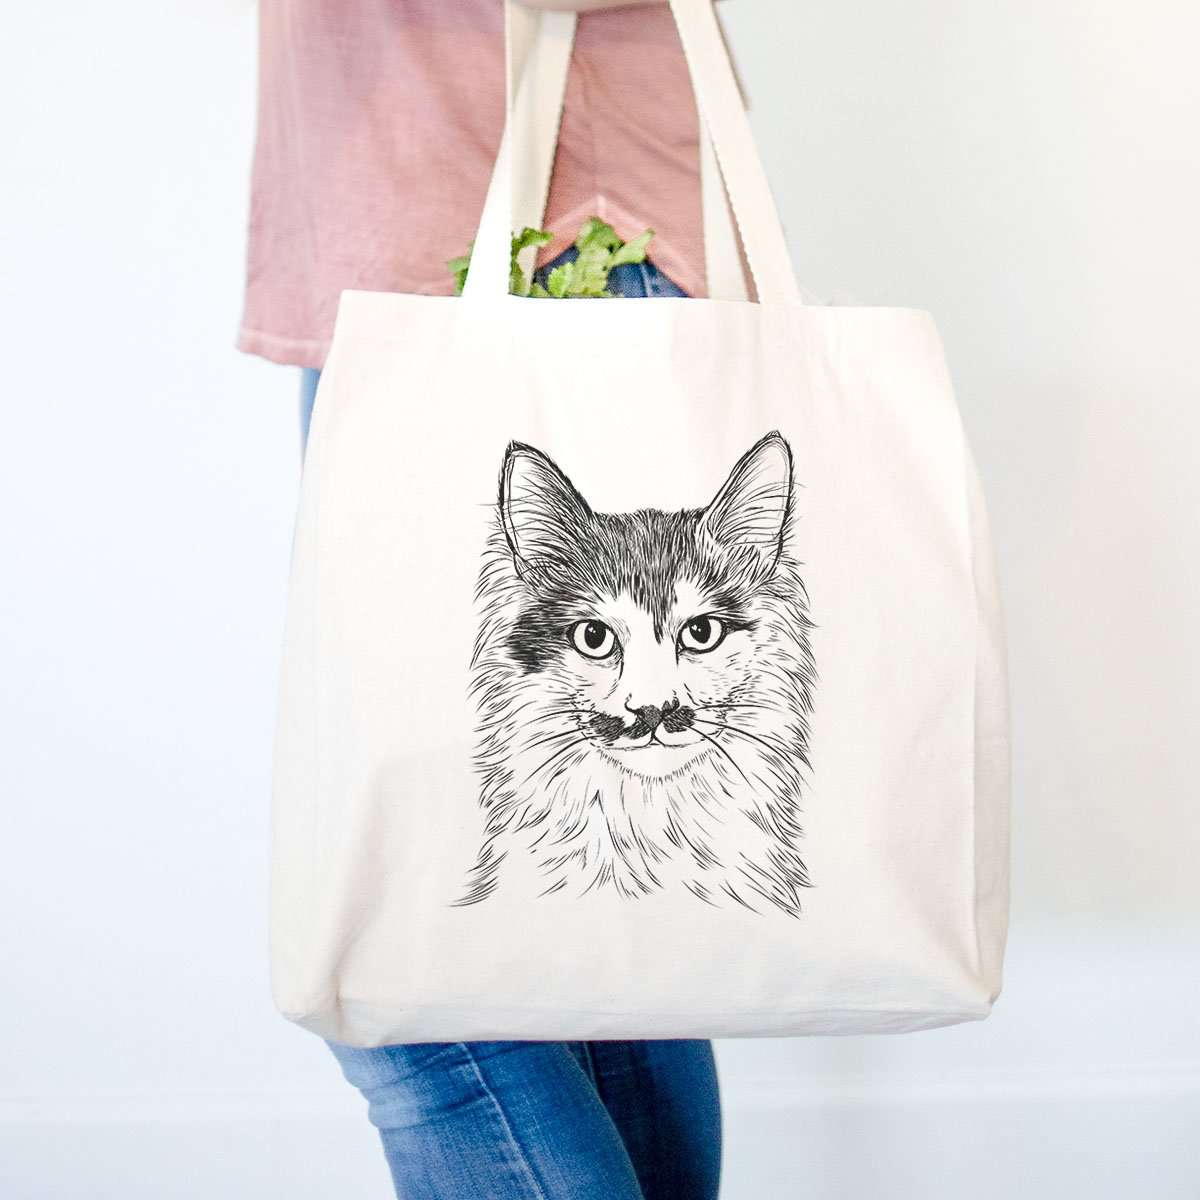 Stache the Longhaired Mustache - Tote Bag